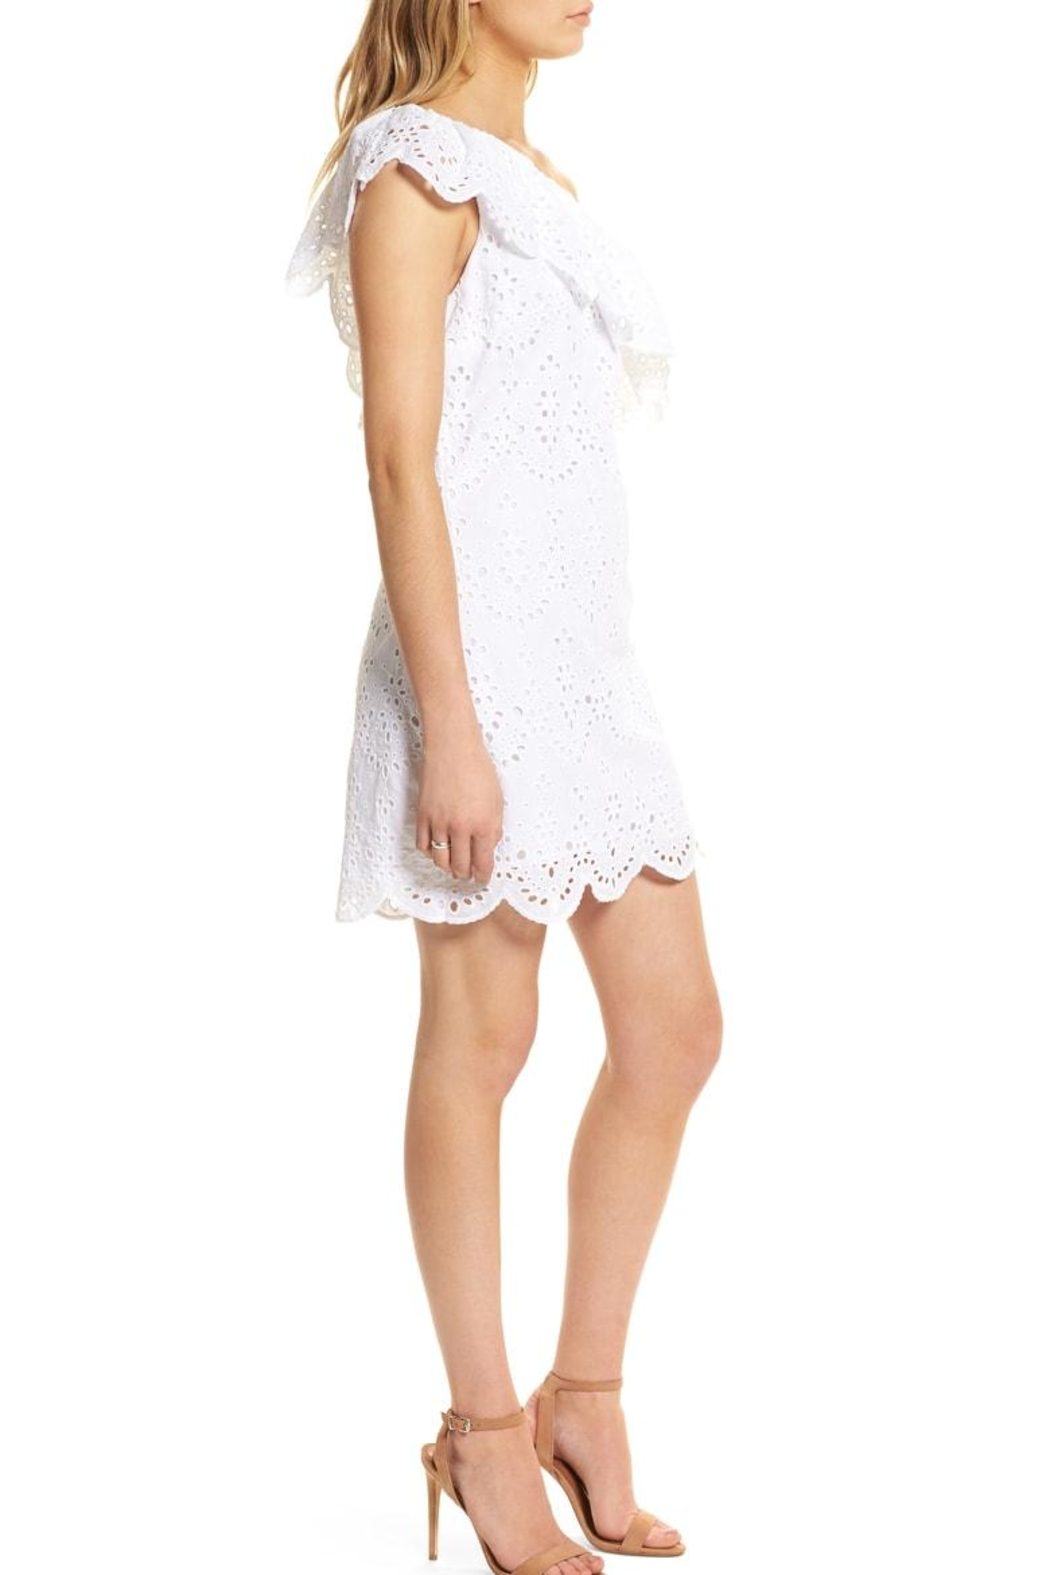 Cupcakes and Cashmere Cosmo Eyelet Dress - Side Cropped Image